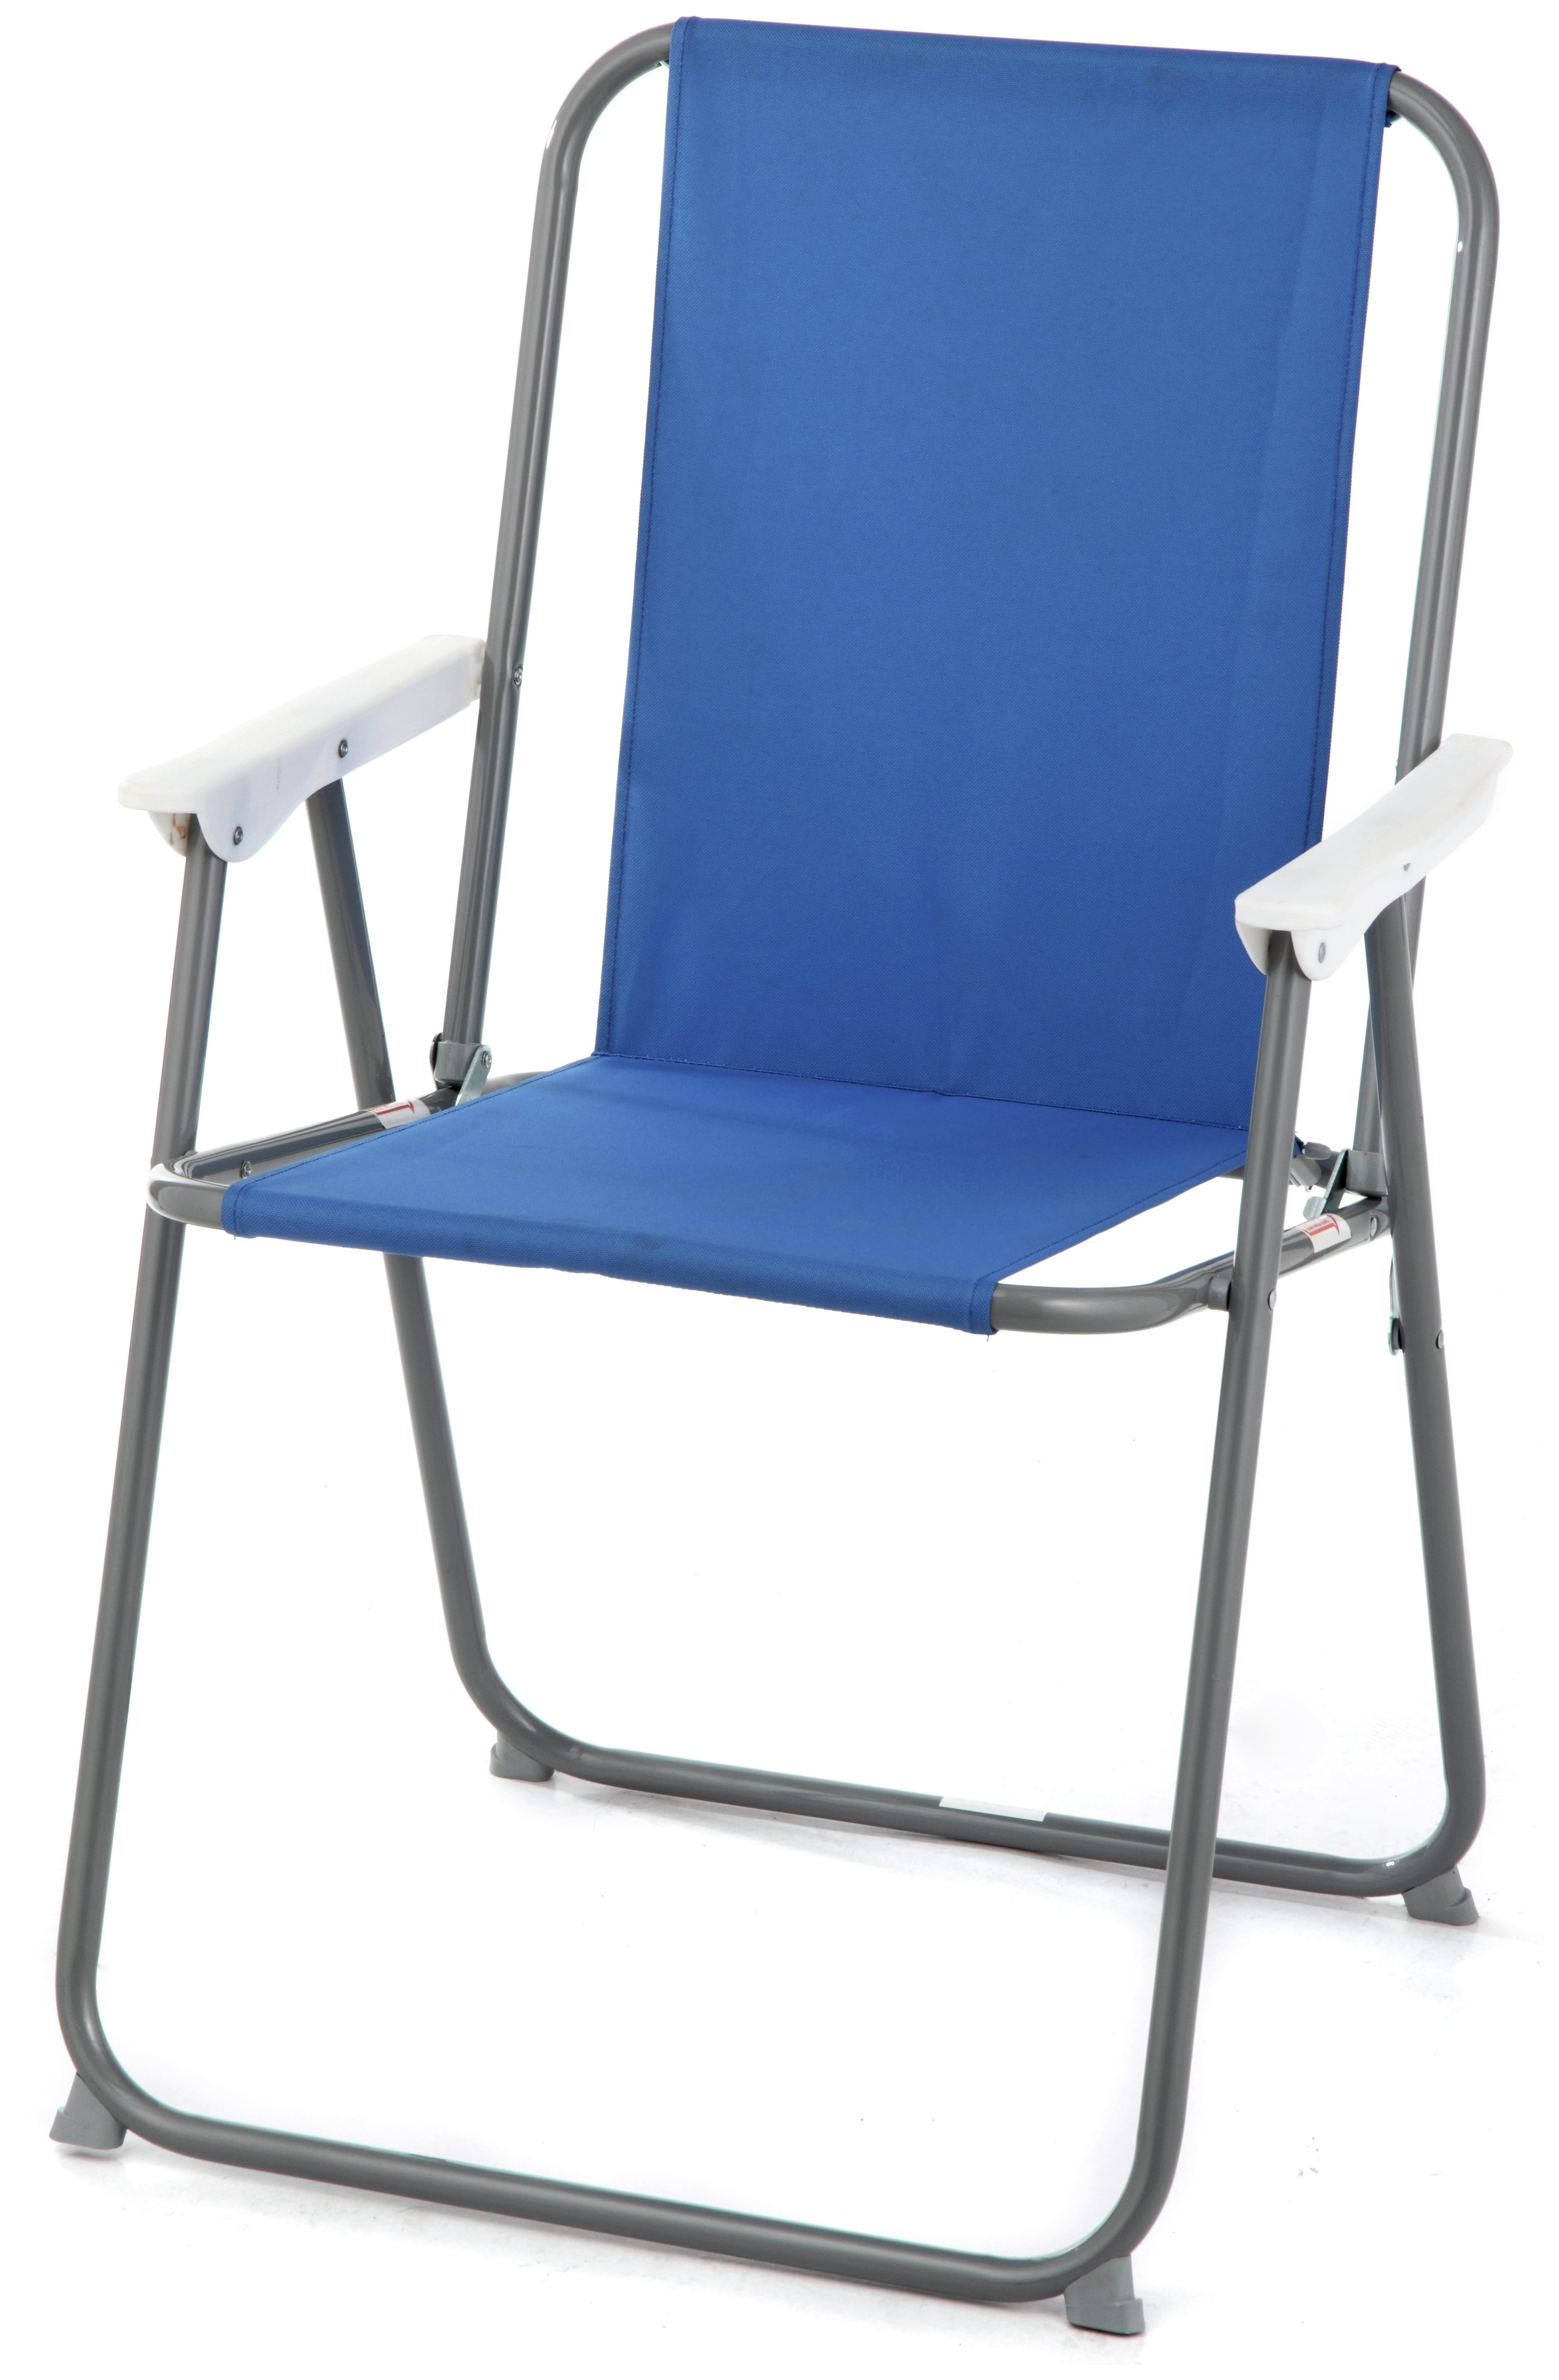 Fold Up Garden Chairs